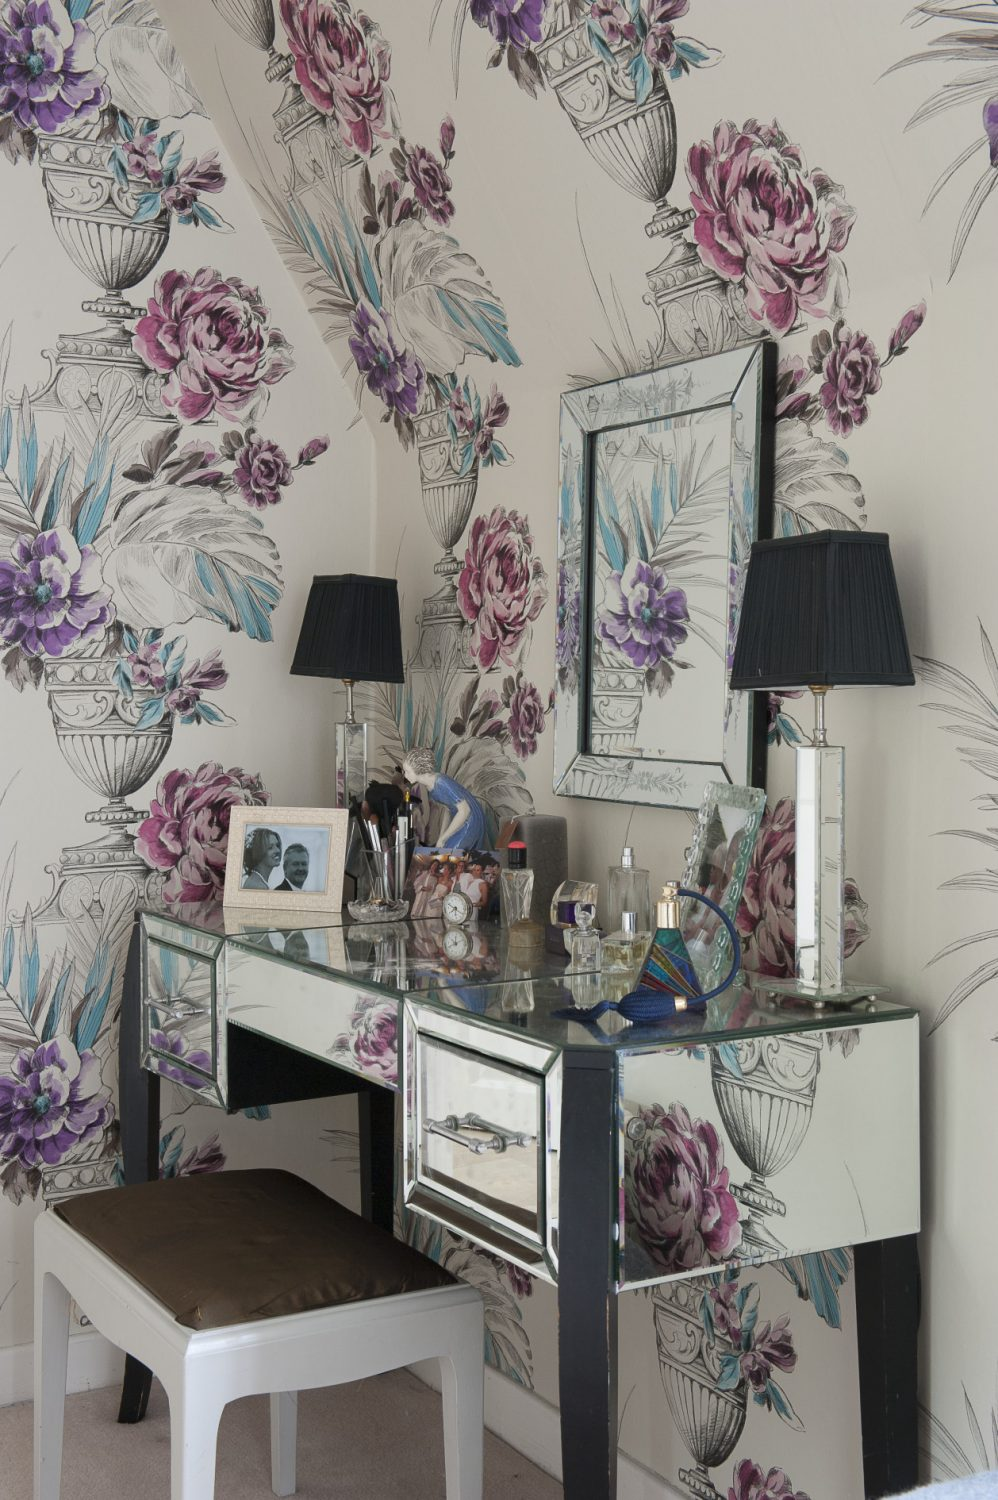 A glamorous mirrored dressing table provides the focal point of Steph's dressing area